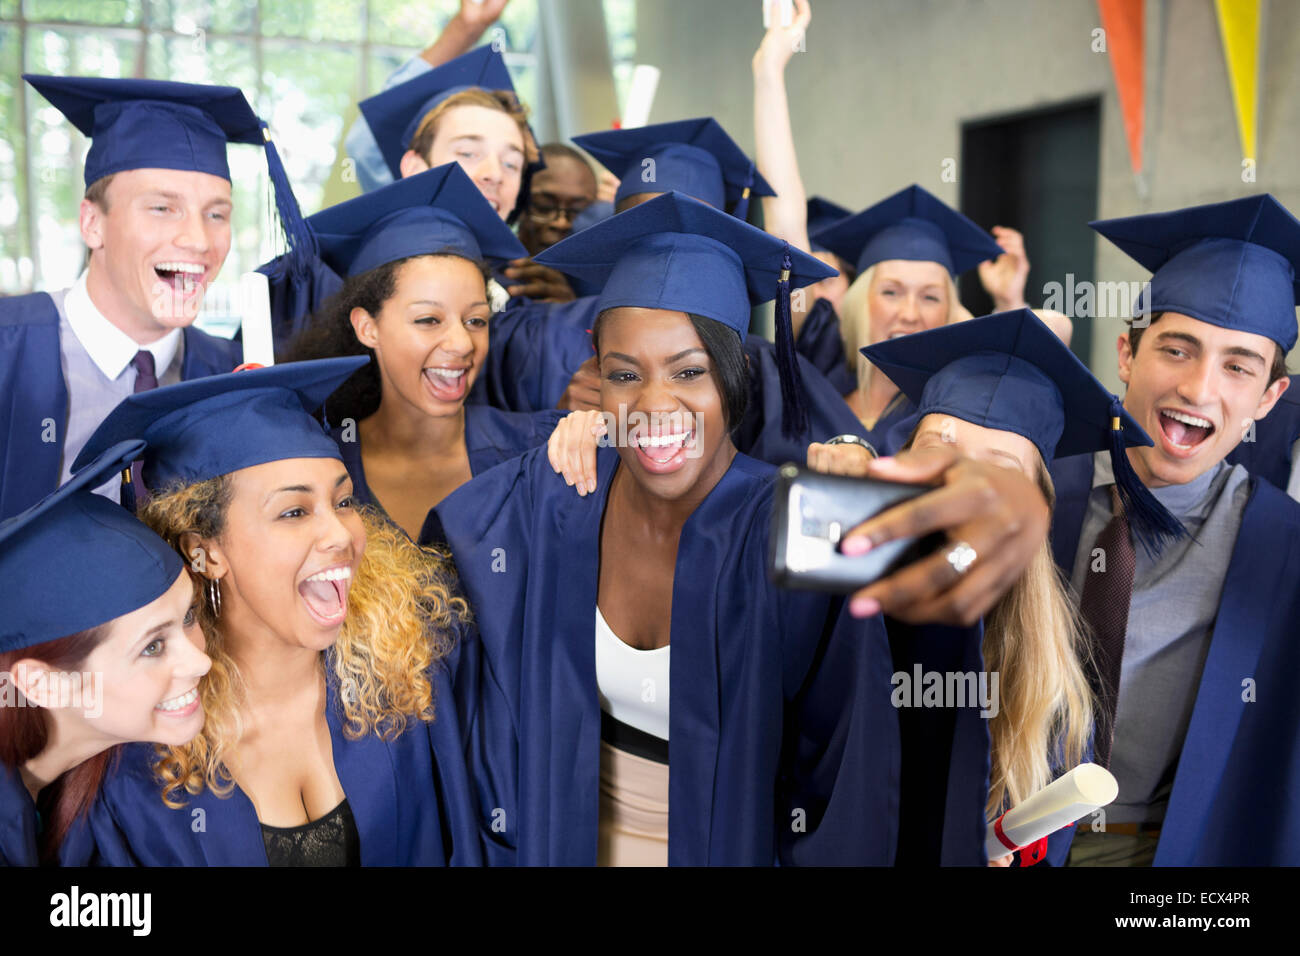 fce17a23253 Group of smiling students in graduation gowns taking selfie on graduation  day - Stock Image